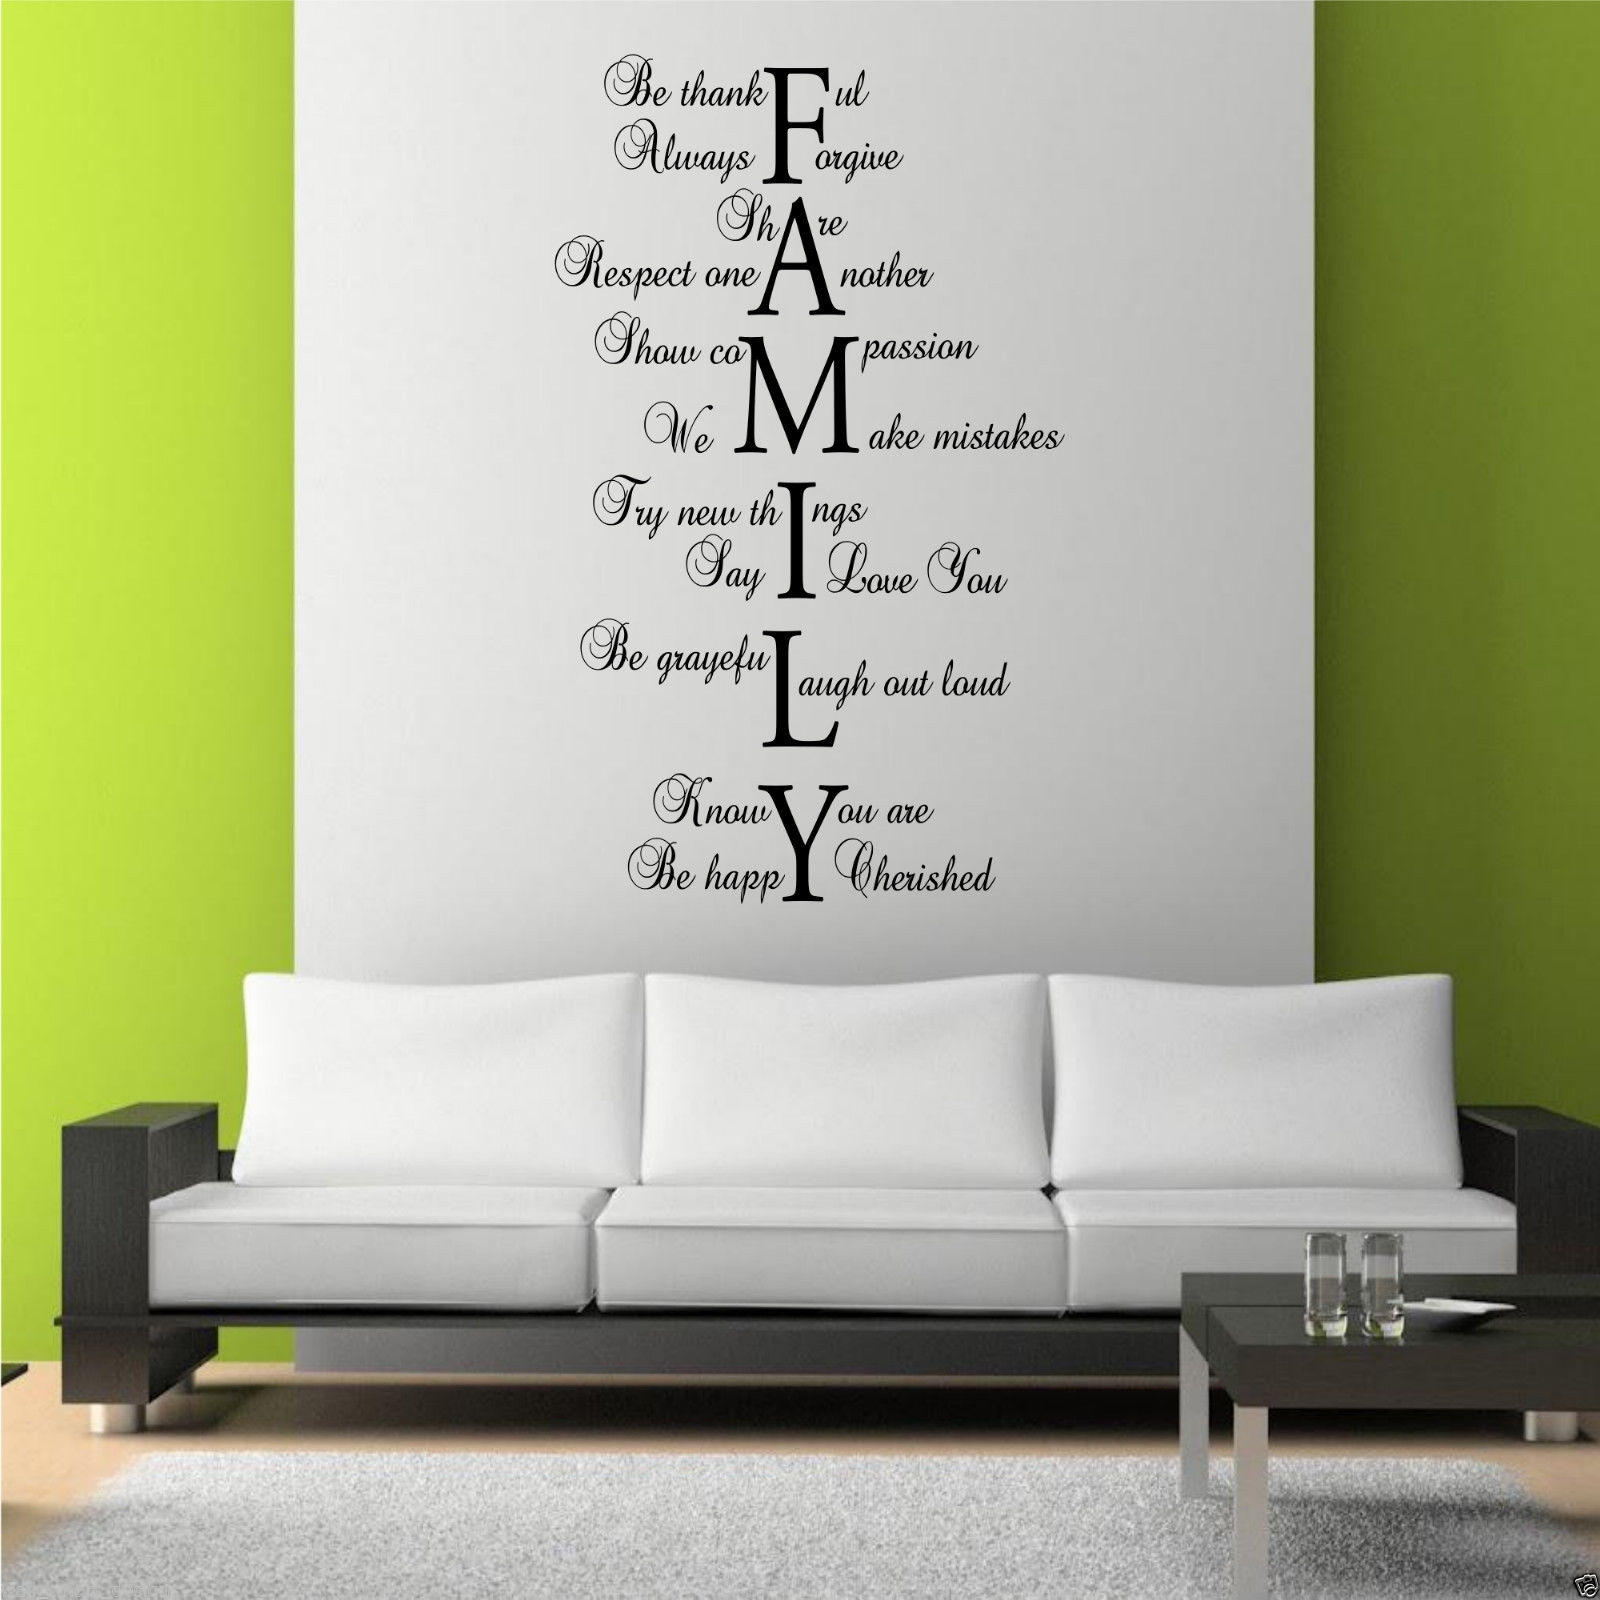 Family Love Life Wall Art Sticker Quote Room Decal Mural Transfer Pertaining To Recent Wall Sticker Art (View 3 of 15)